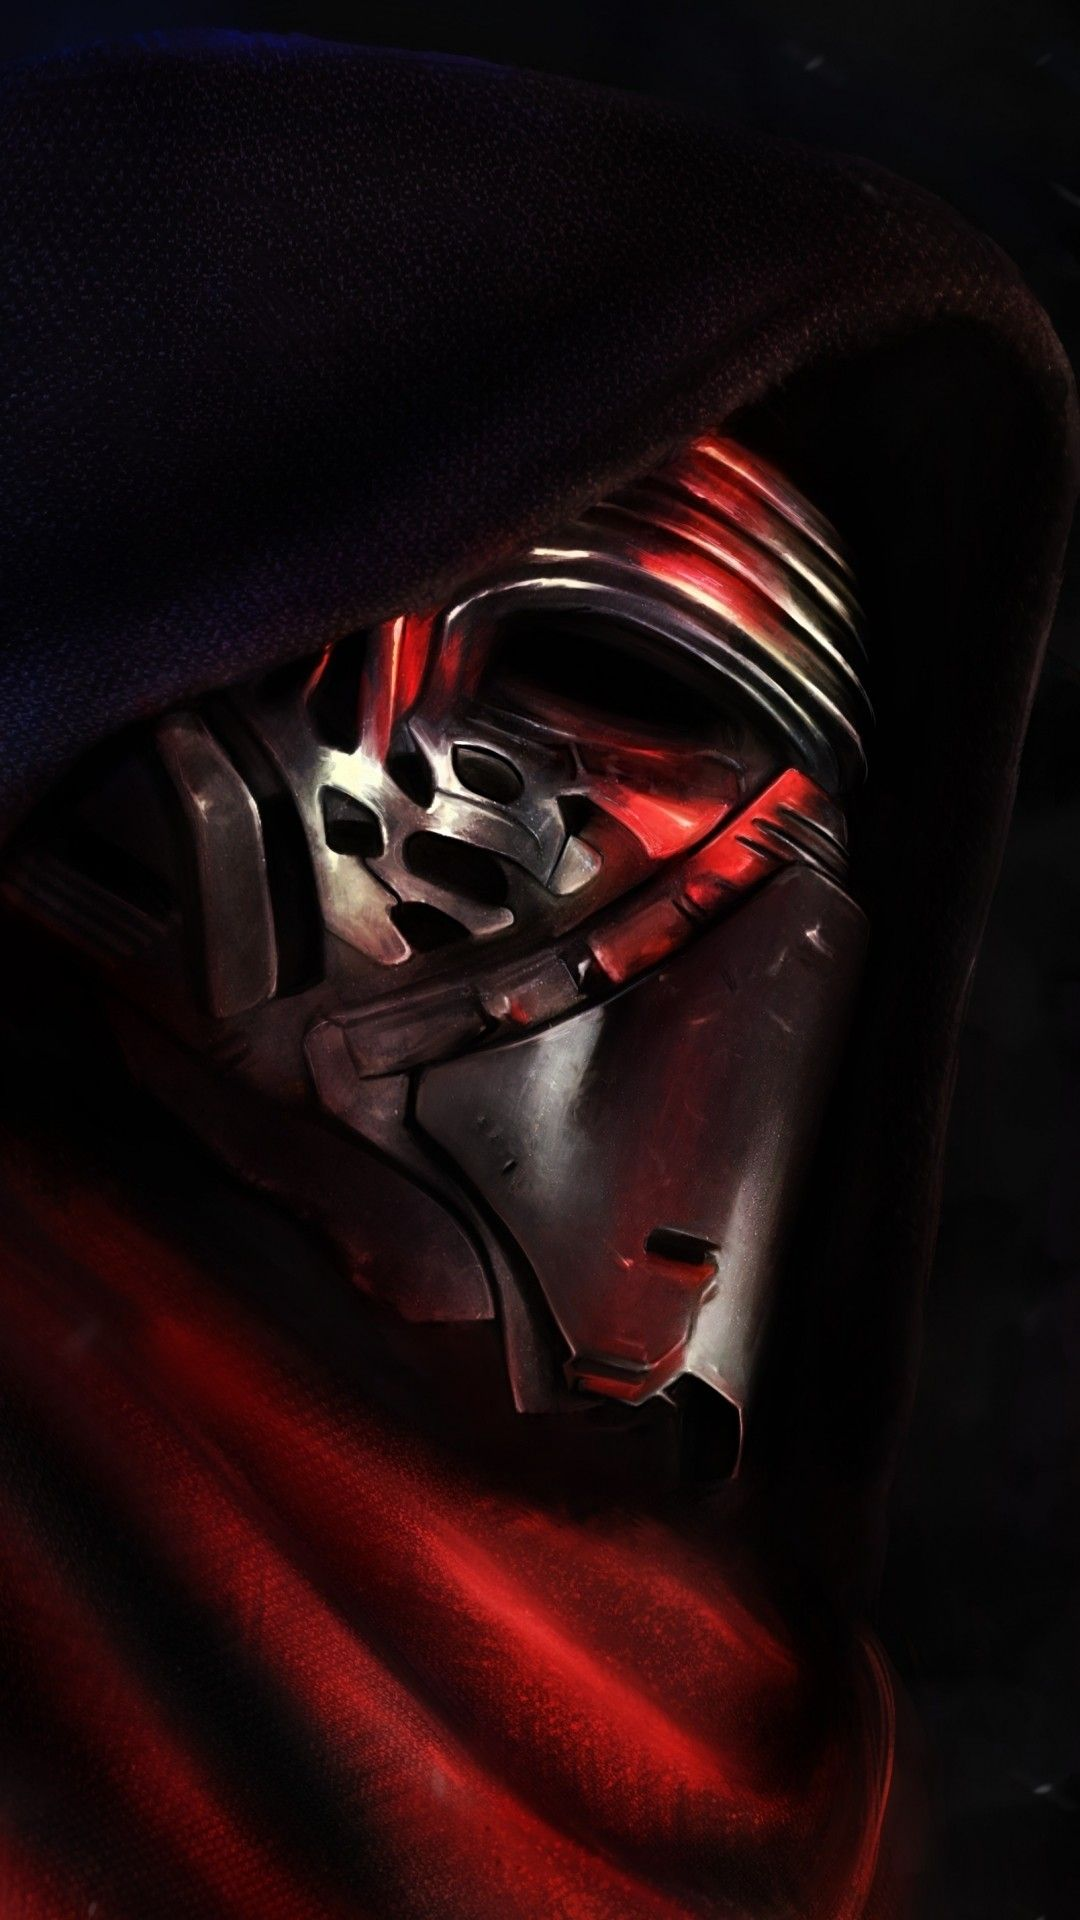 65 Star Wars Live Wallpaper Android Android Iphone Desktop Hd Backgrounds Wallpapers 1080p 4k 1080x1920 2020